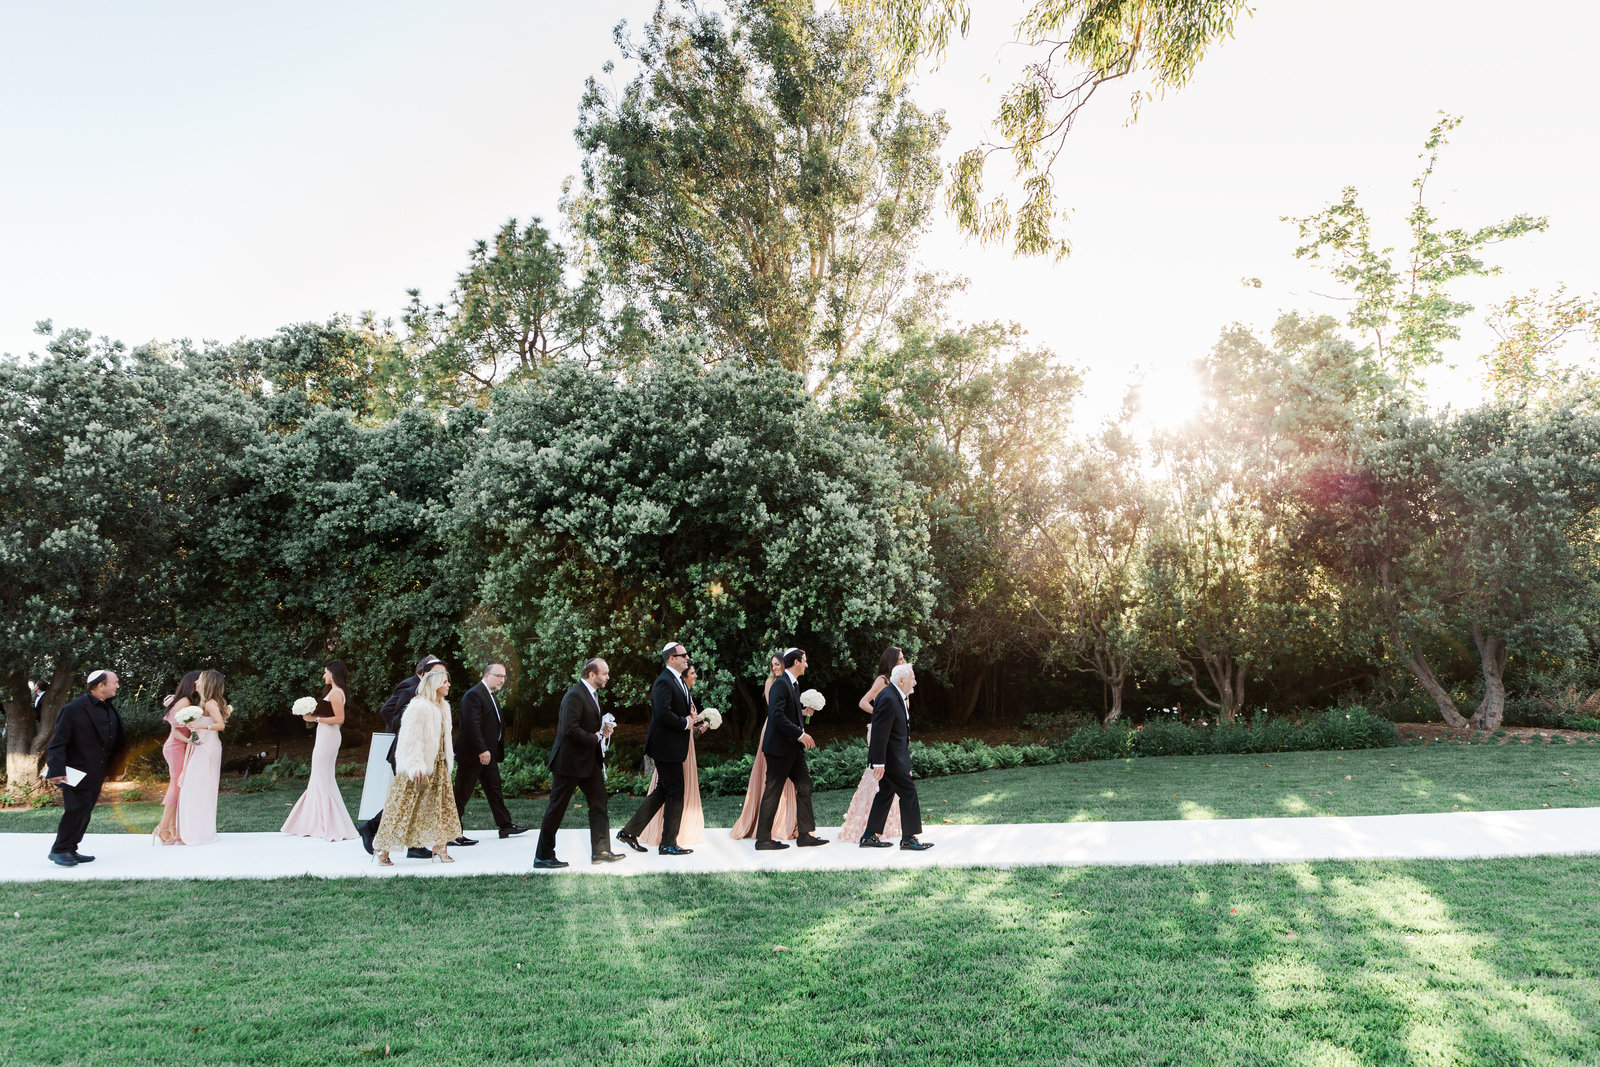 Malibu Private Estate Wedding_Valorie Darling Photography_020B4085